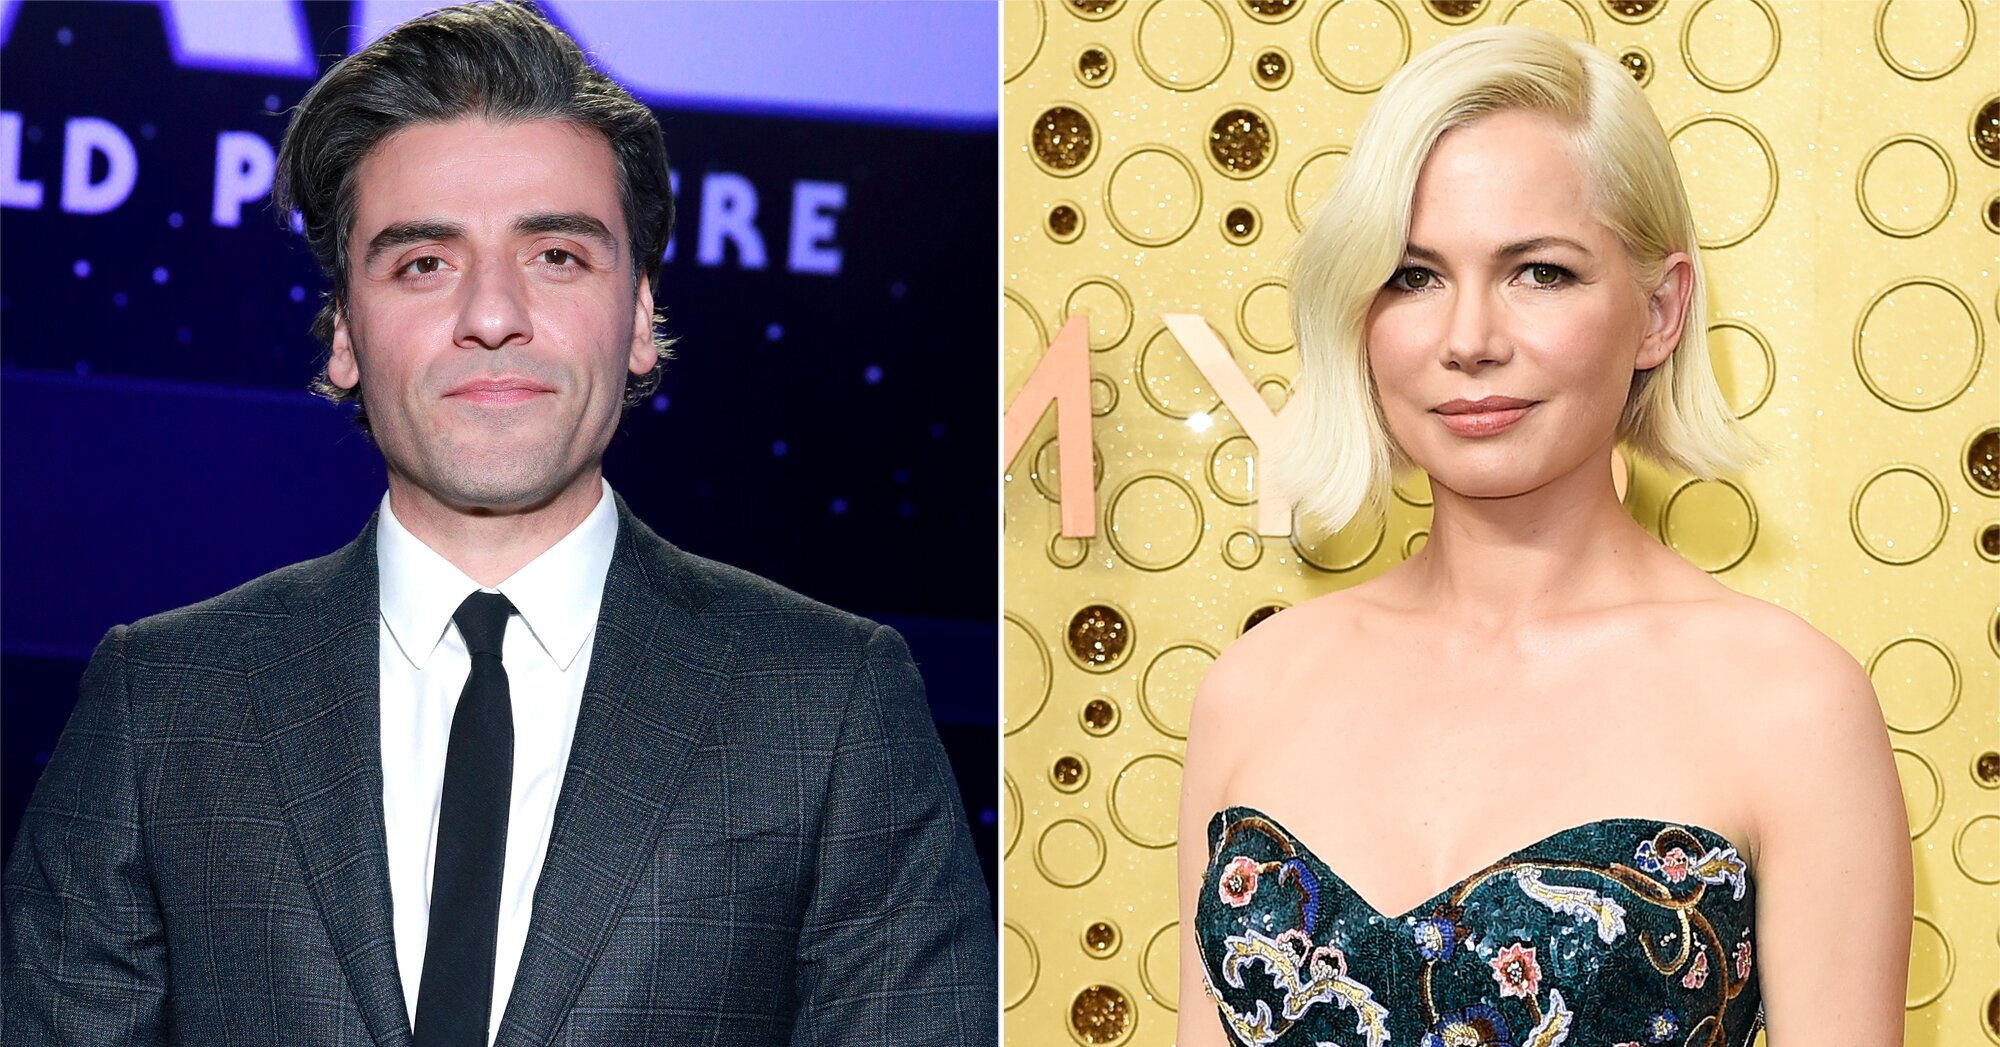 Oscar Isaac and Michelle Williams to star in HBO's 'Scenes From a Marriage' limited series